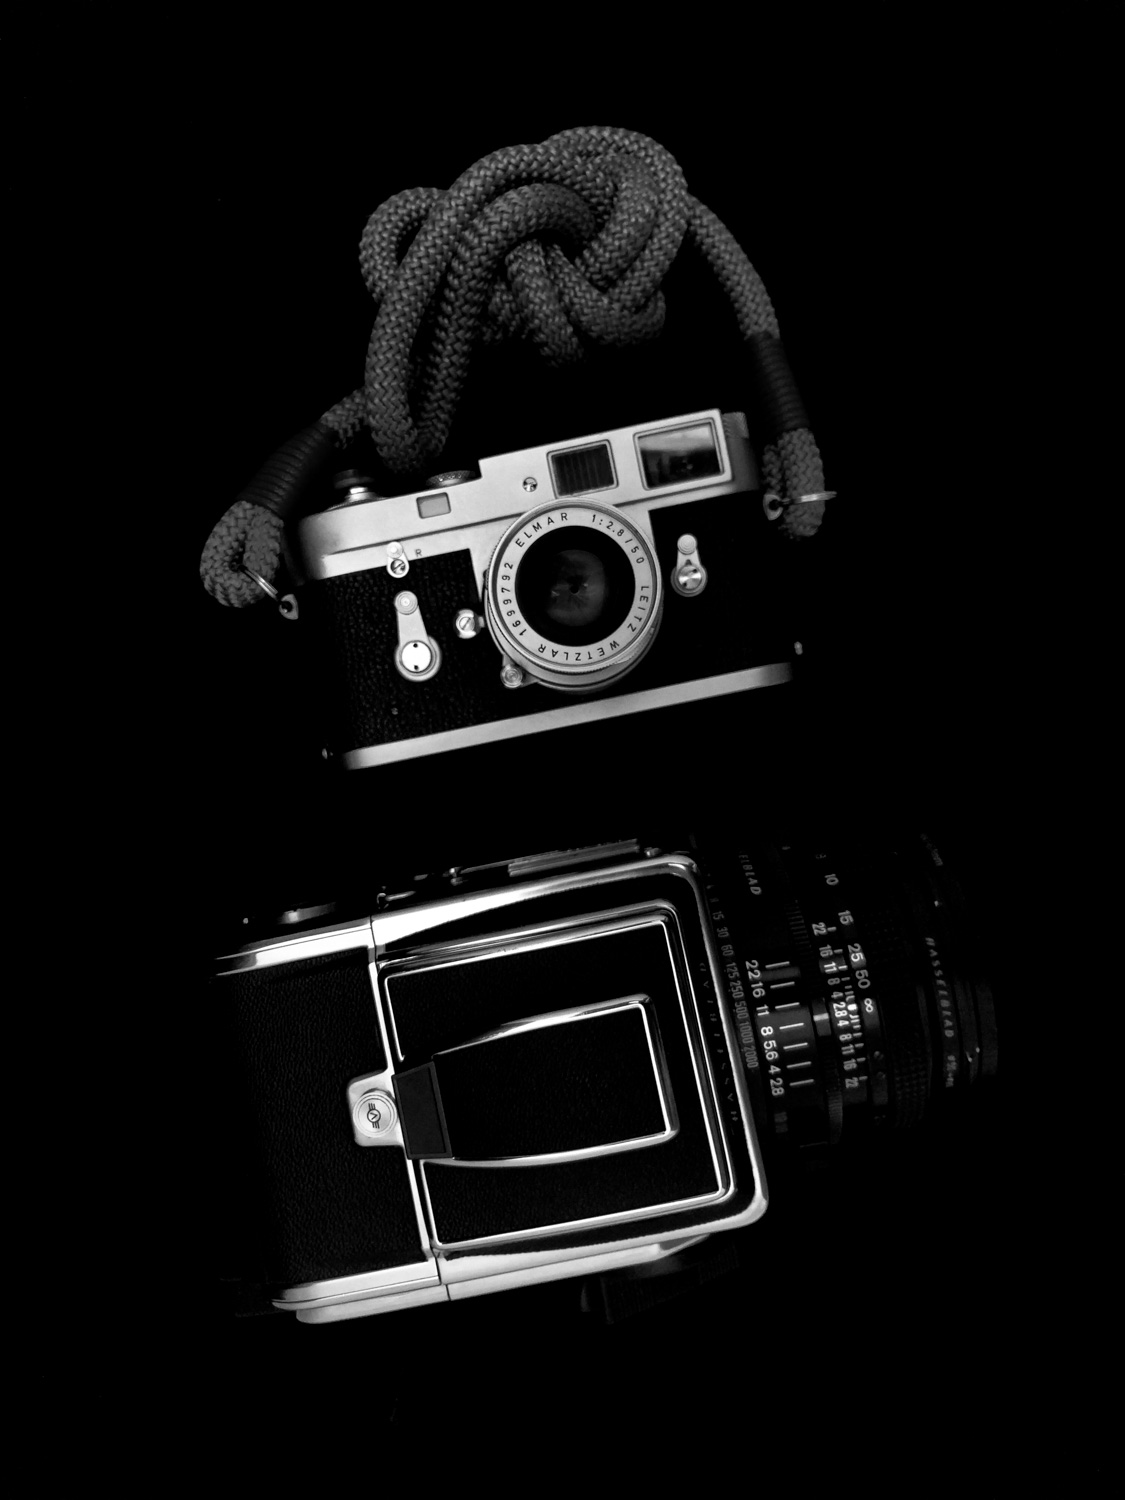 Hasselblad 2000FCW vs Leica M2 and Leica Tele-Elmarit 50mm f/2.8